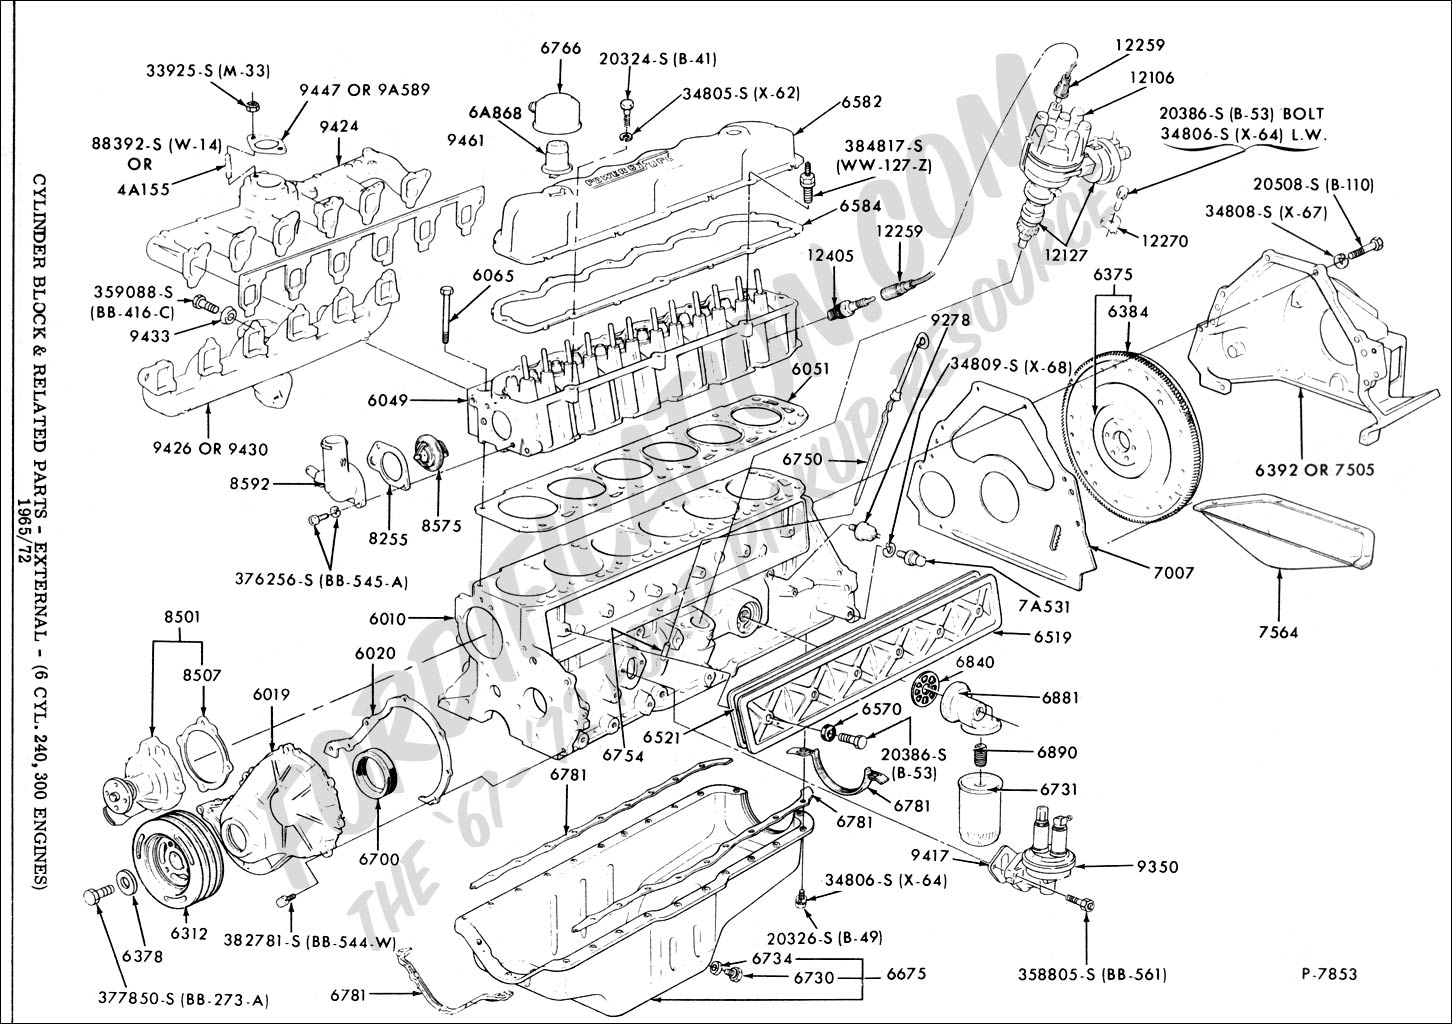 hight resolution of ford engine schematics schematic wiring diagrams 98 ford explorer engine diagram ford engine diagram wiring diagram